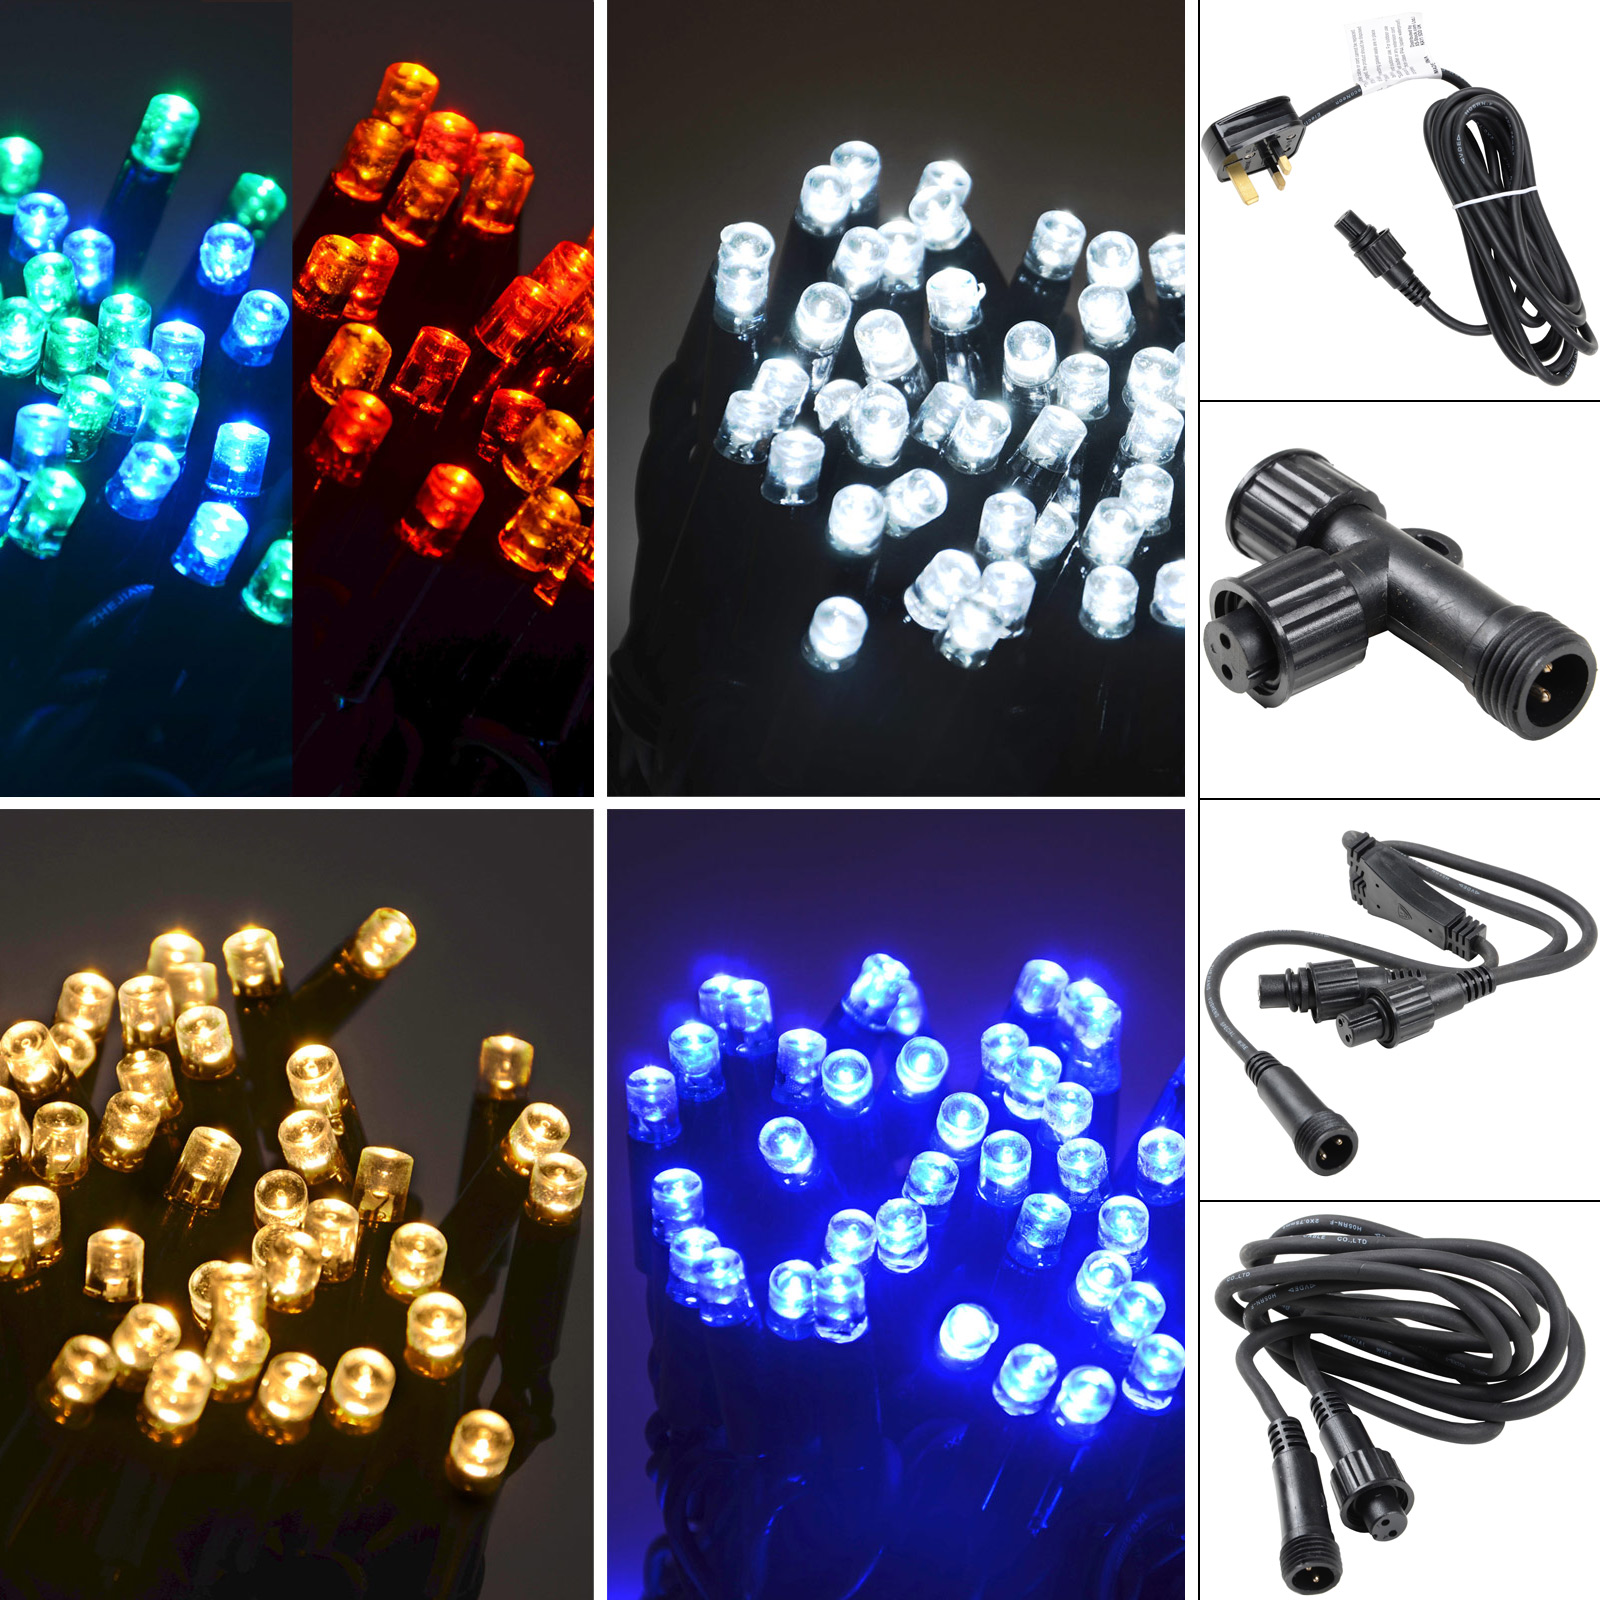 Connectable String Lights 100 LED Sets Power Cord Extension Cables Outdoor Use